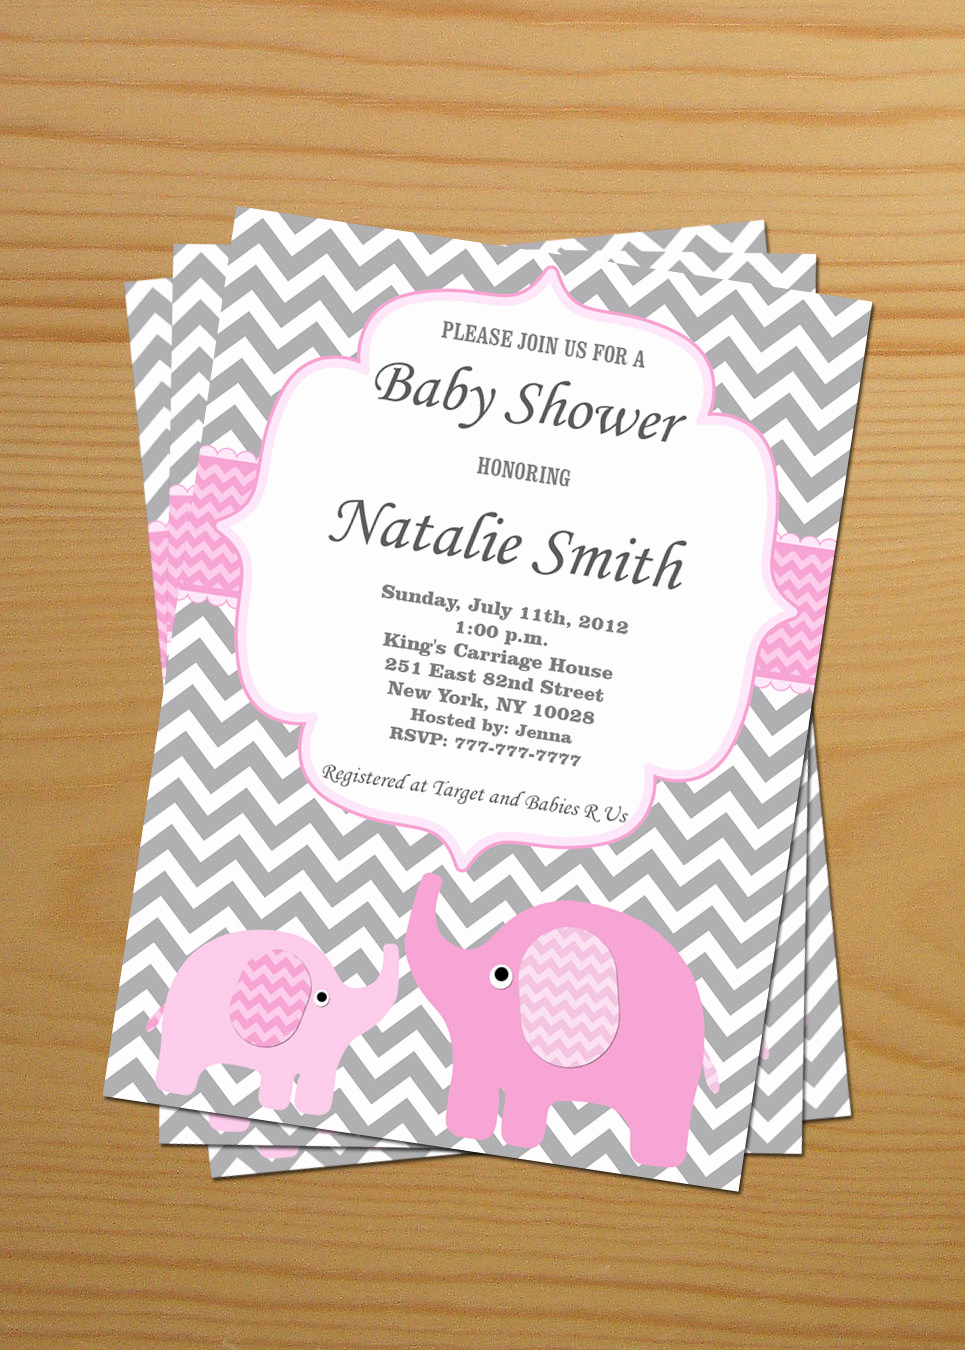 Elephant Baby Shower Invitation Unique Baby Shower Invitation Elephant Baby Shower Invitation Girl